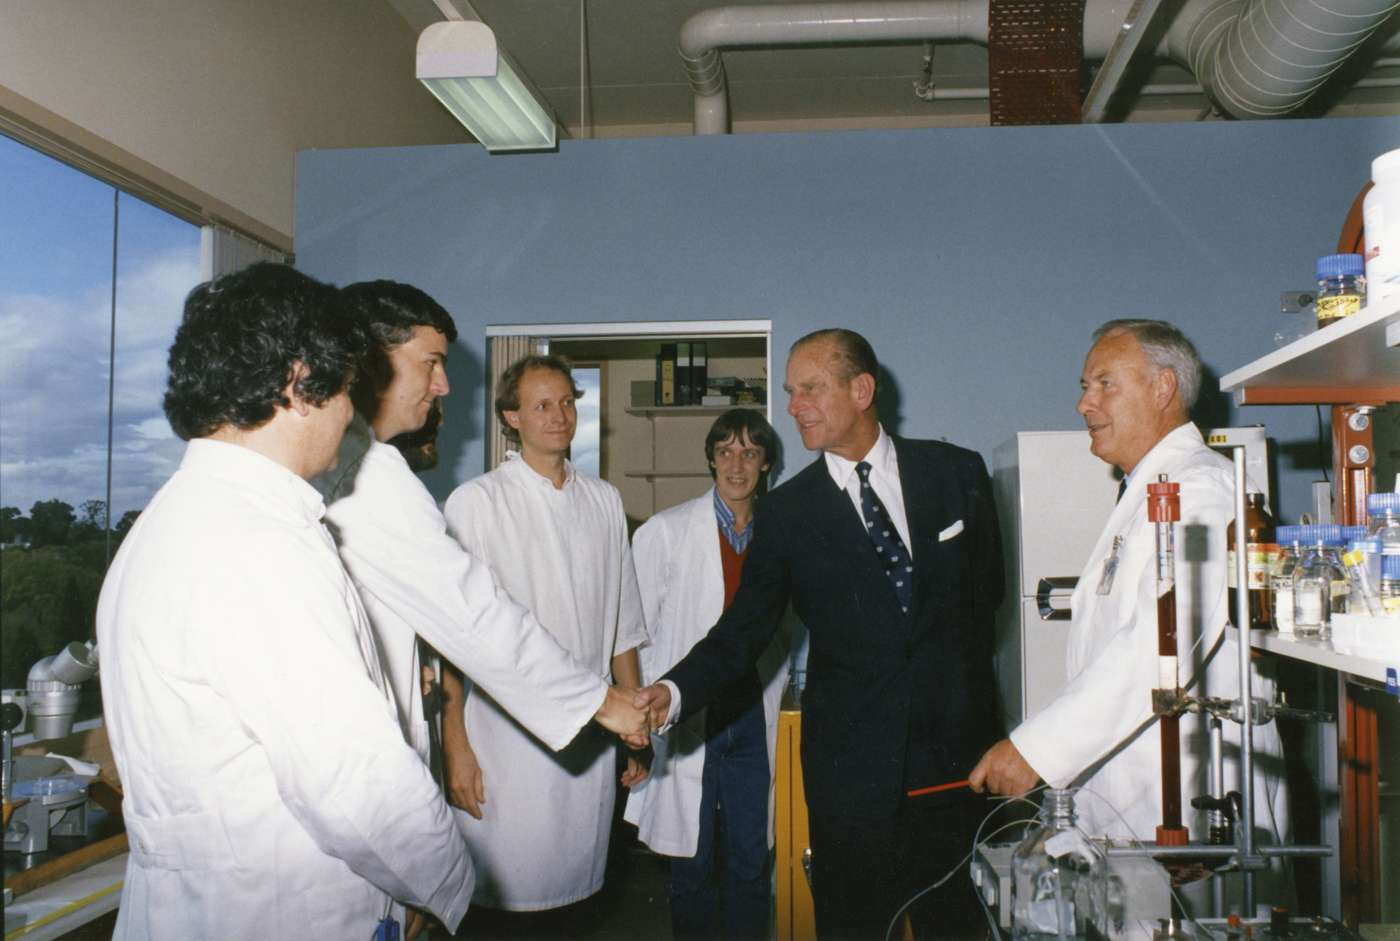 Scientists in white lab coats stand in a lab with Prince Phillip in a dark suit.